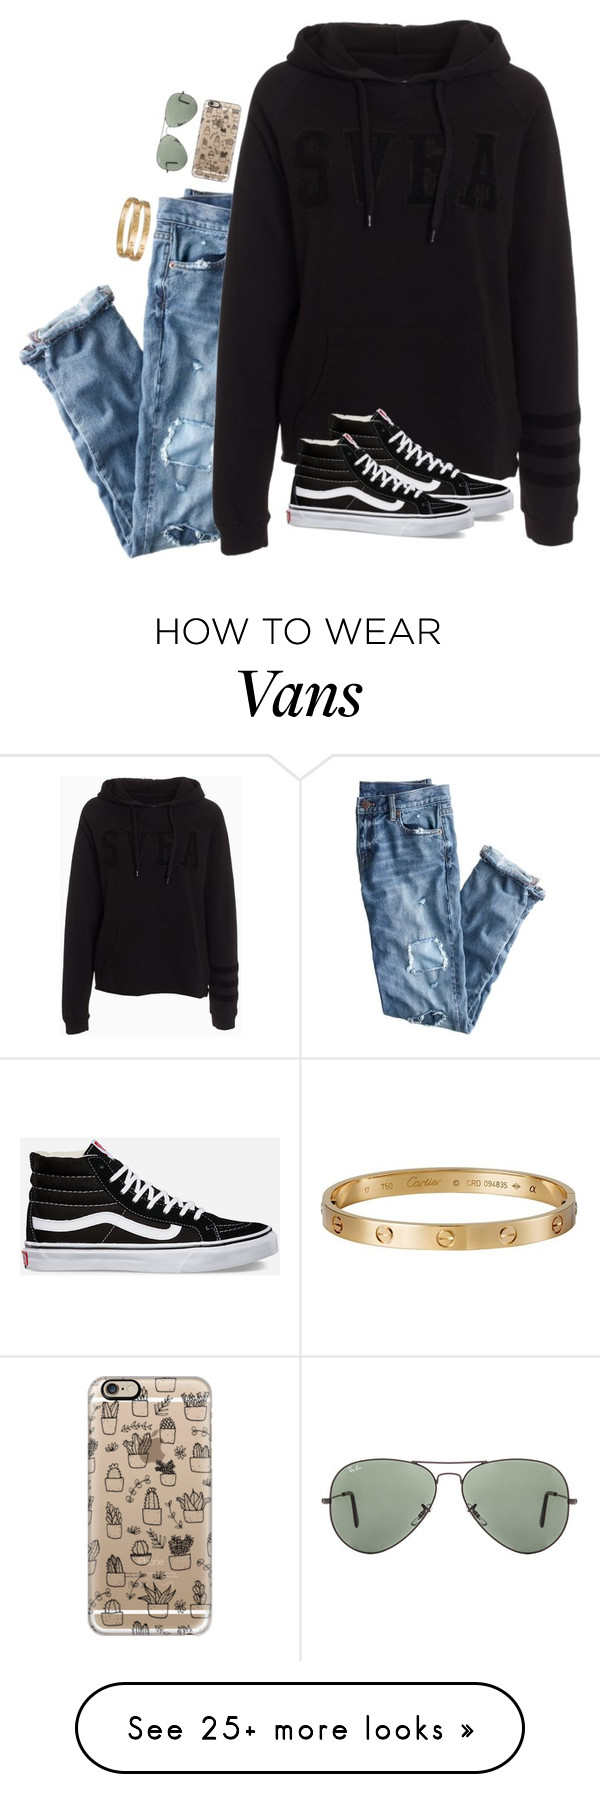 """""""alright, alright, it's a hell of a feeling though"""" by kenandsuch on Polyvore featuring J.Crew, Casetify, Vans, Cartier and Ray-Ban"""